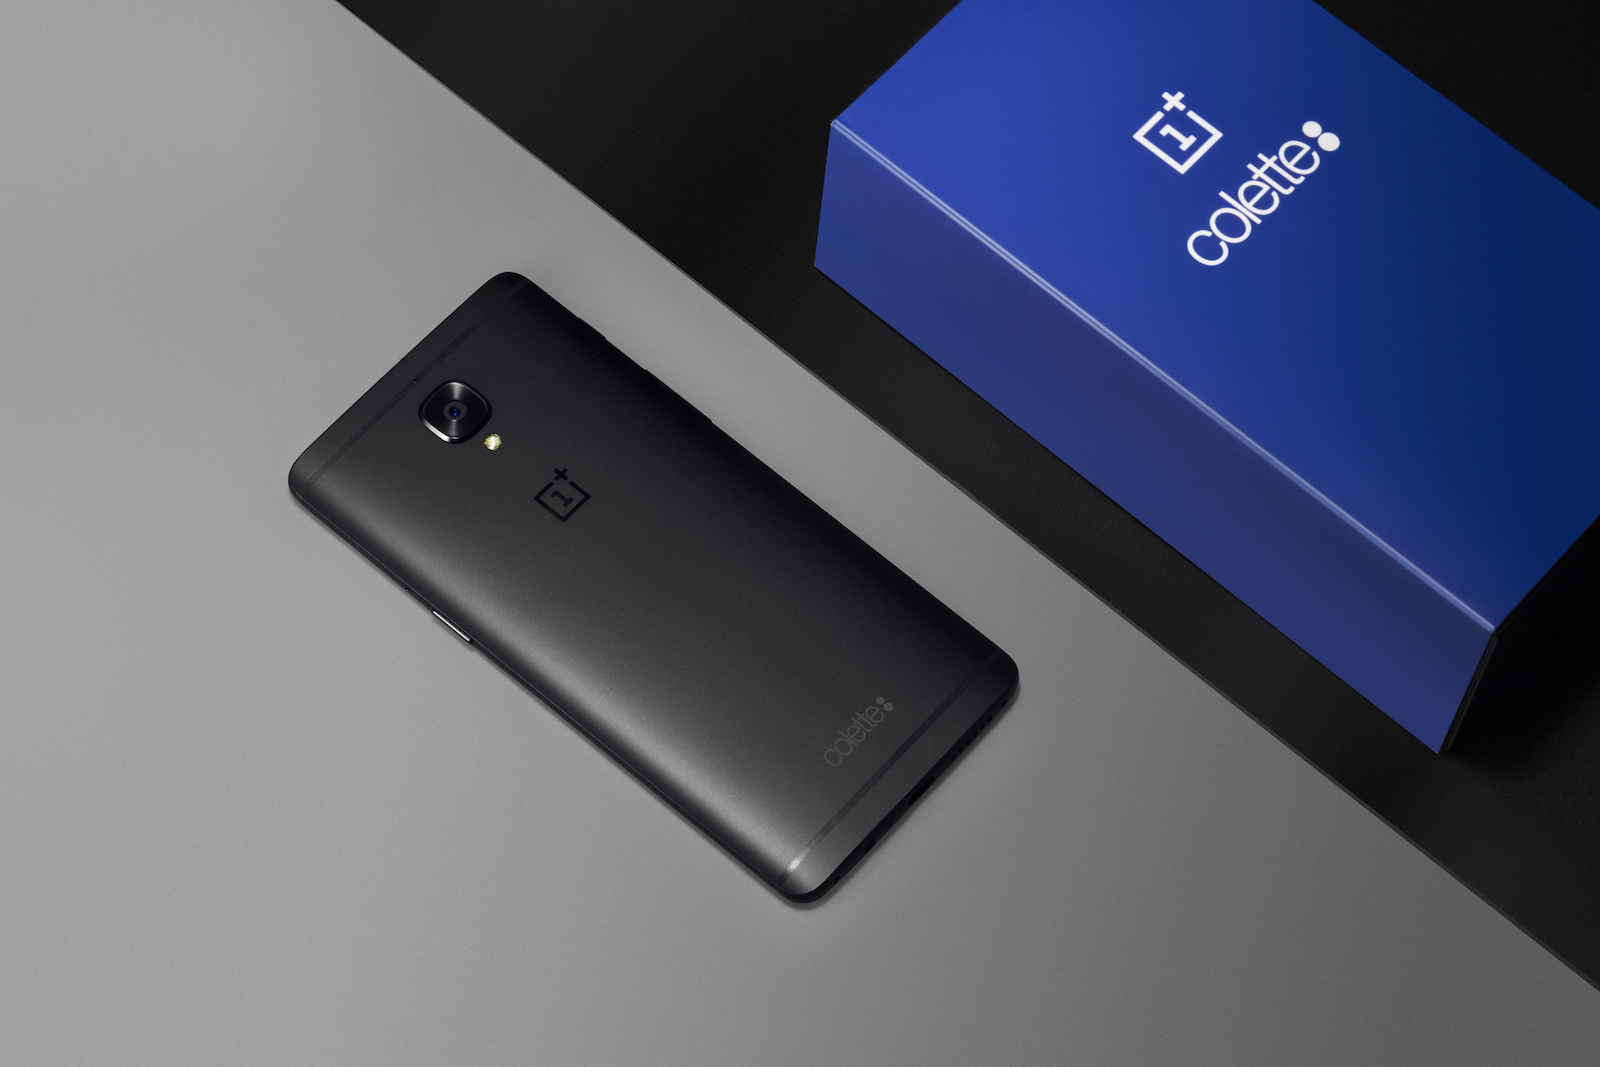 Limited edition Black OnePlus 3T colette box